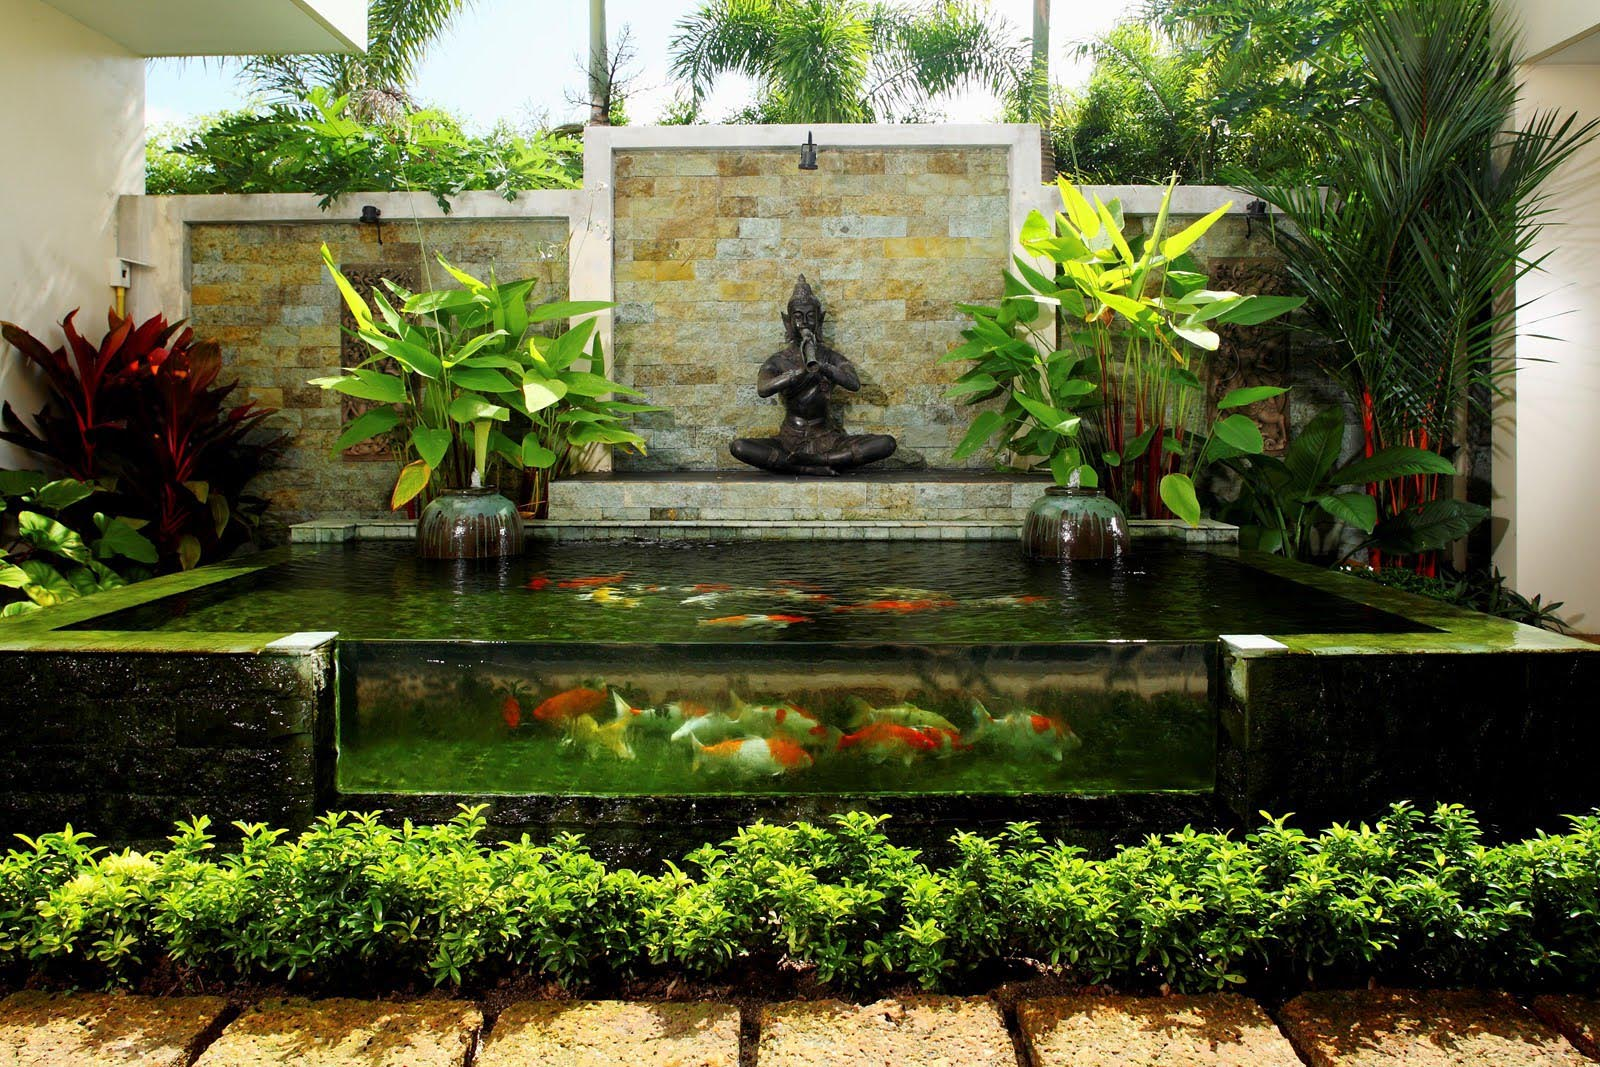 Building garden pond fountains backyard design ideas for Fish pond fountain design